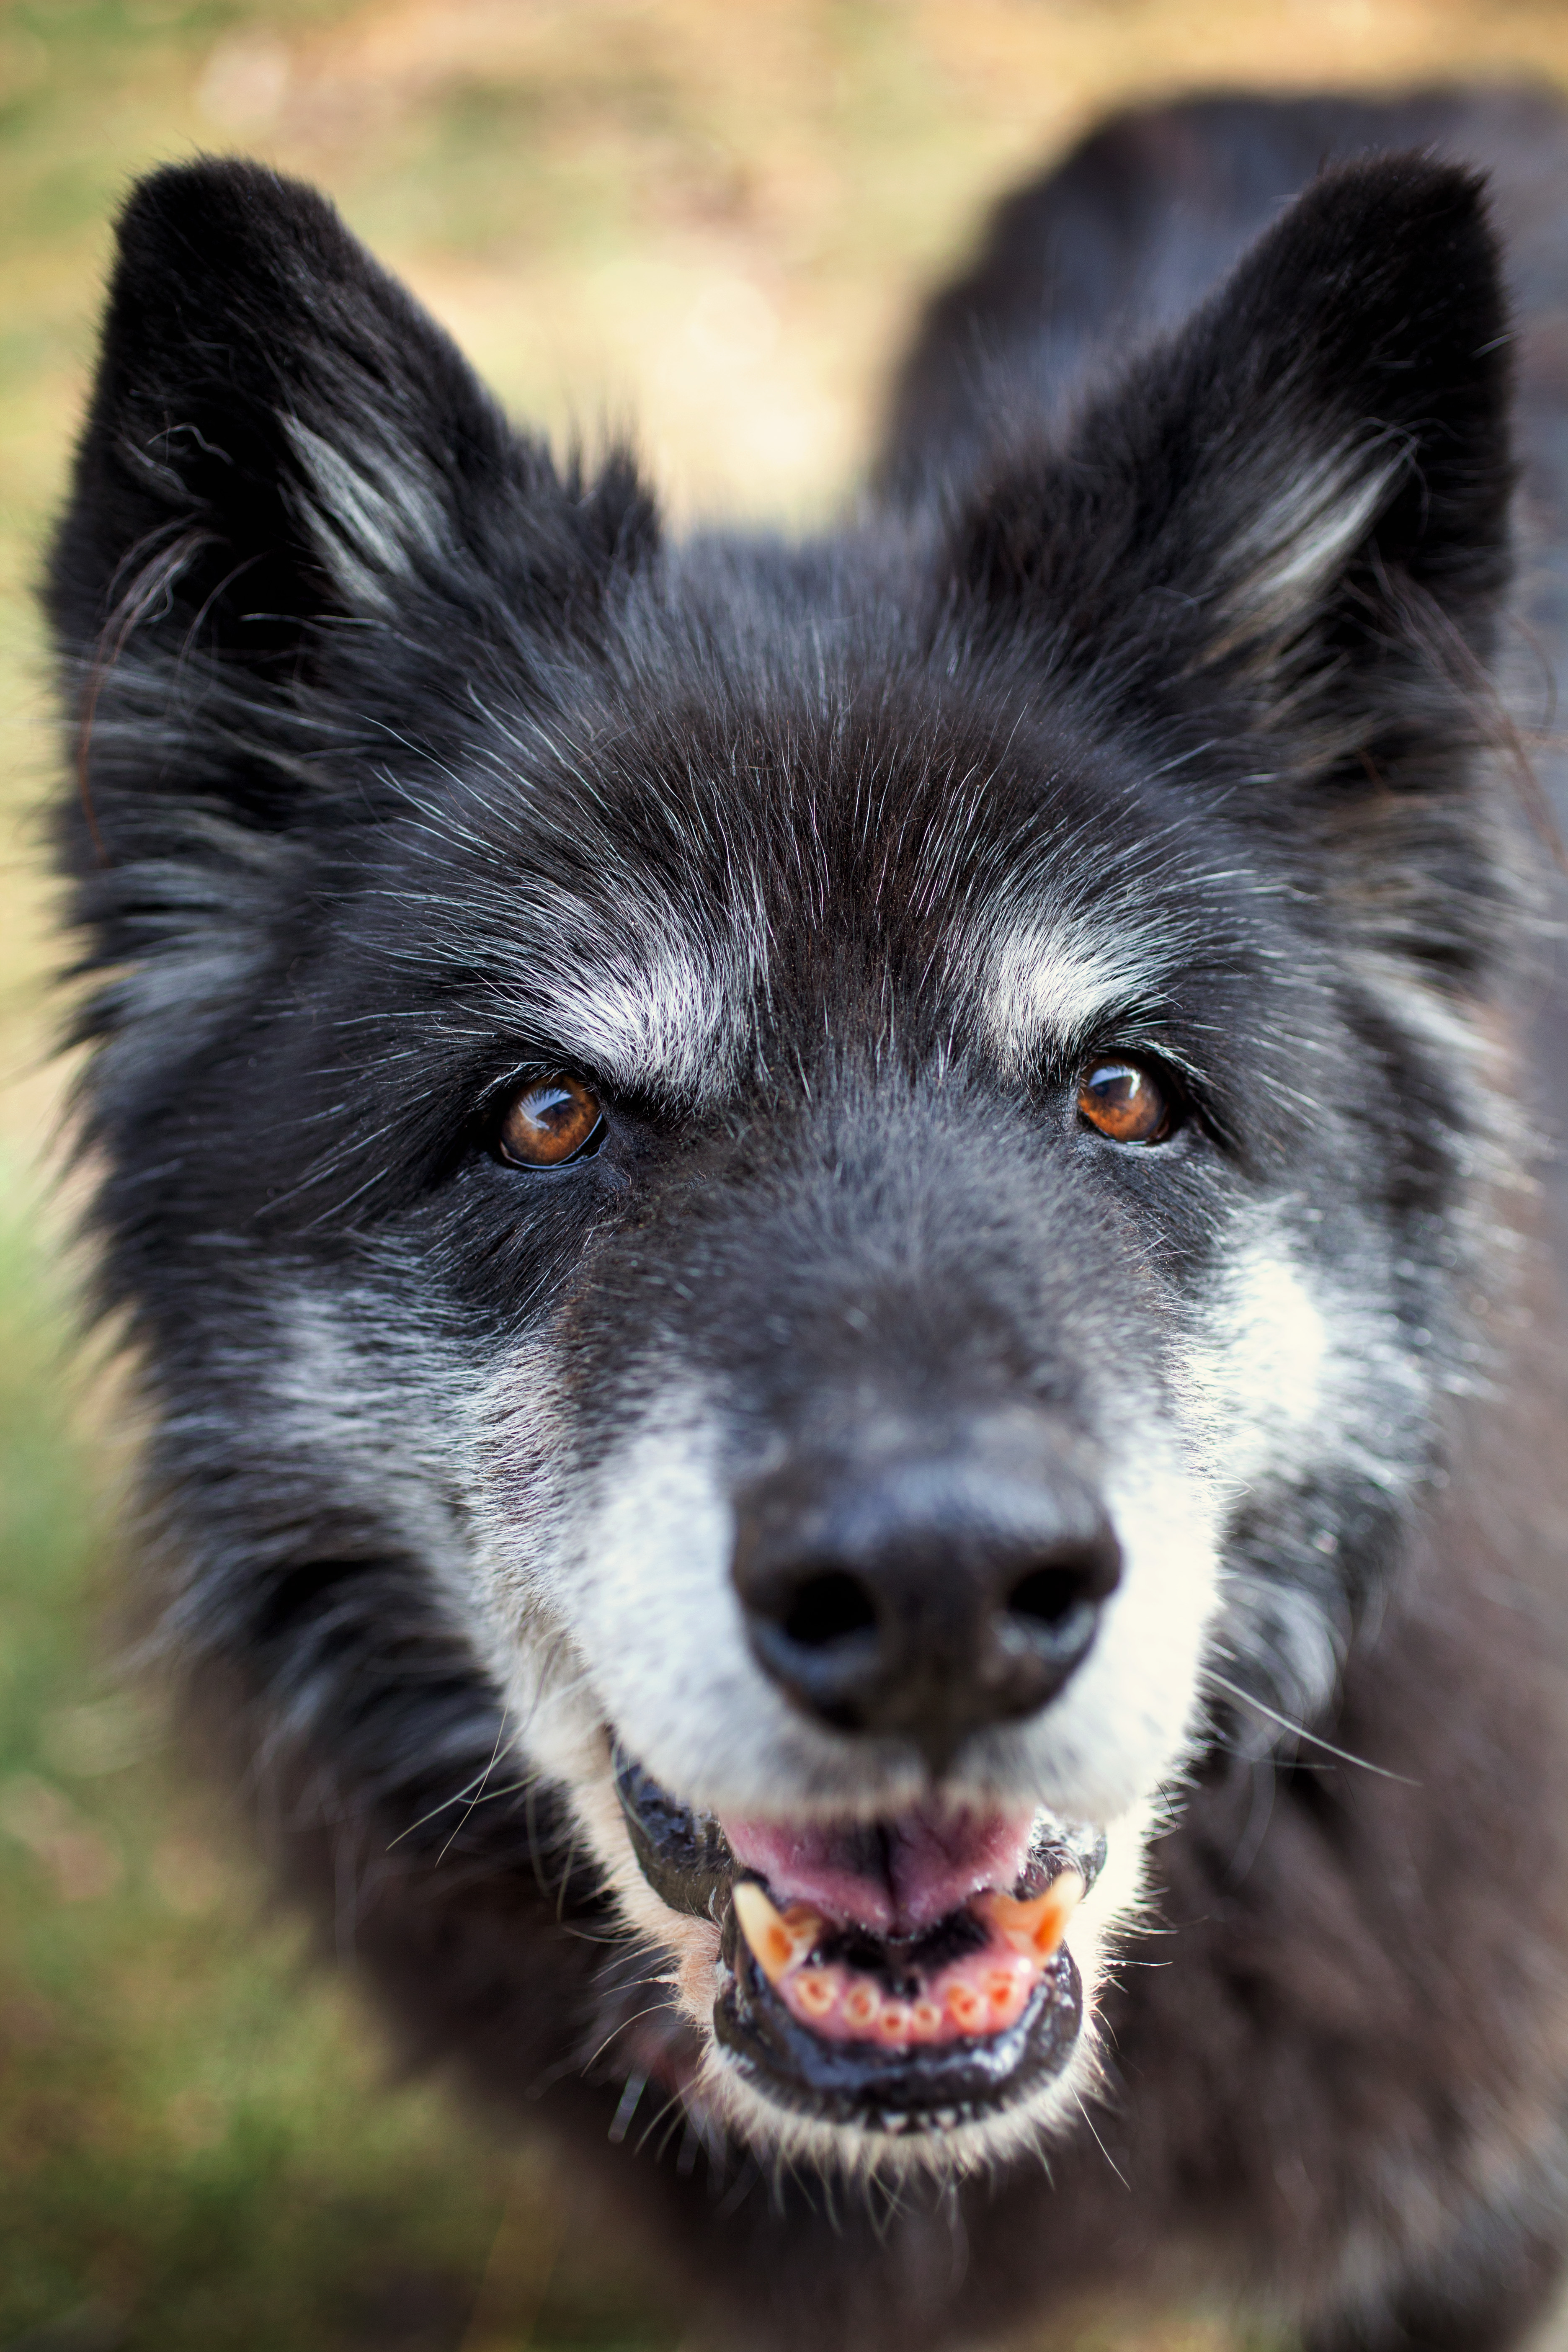 """Akila, a once-feral dog, benefited greatly from positive training. (Photo copyright Lori Fusaro / """"My Old Dog"""")"""